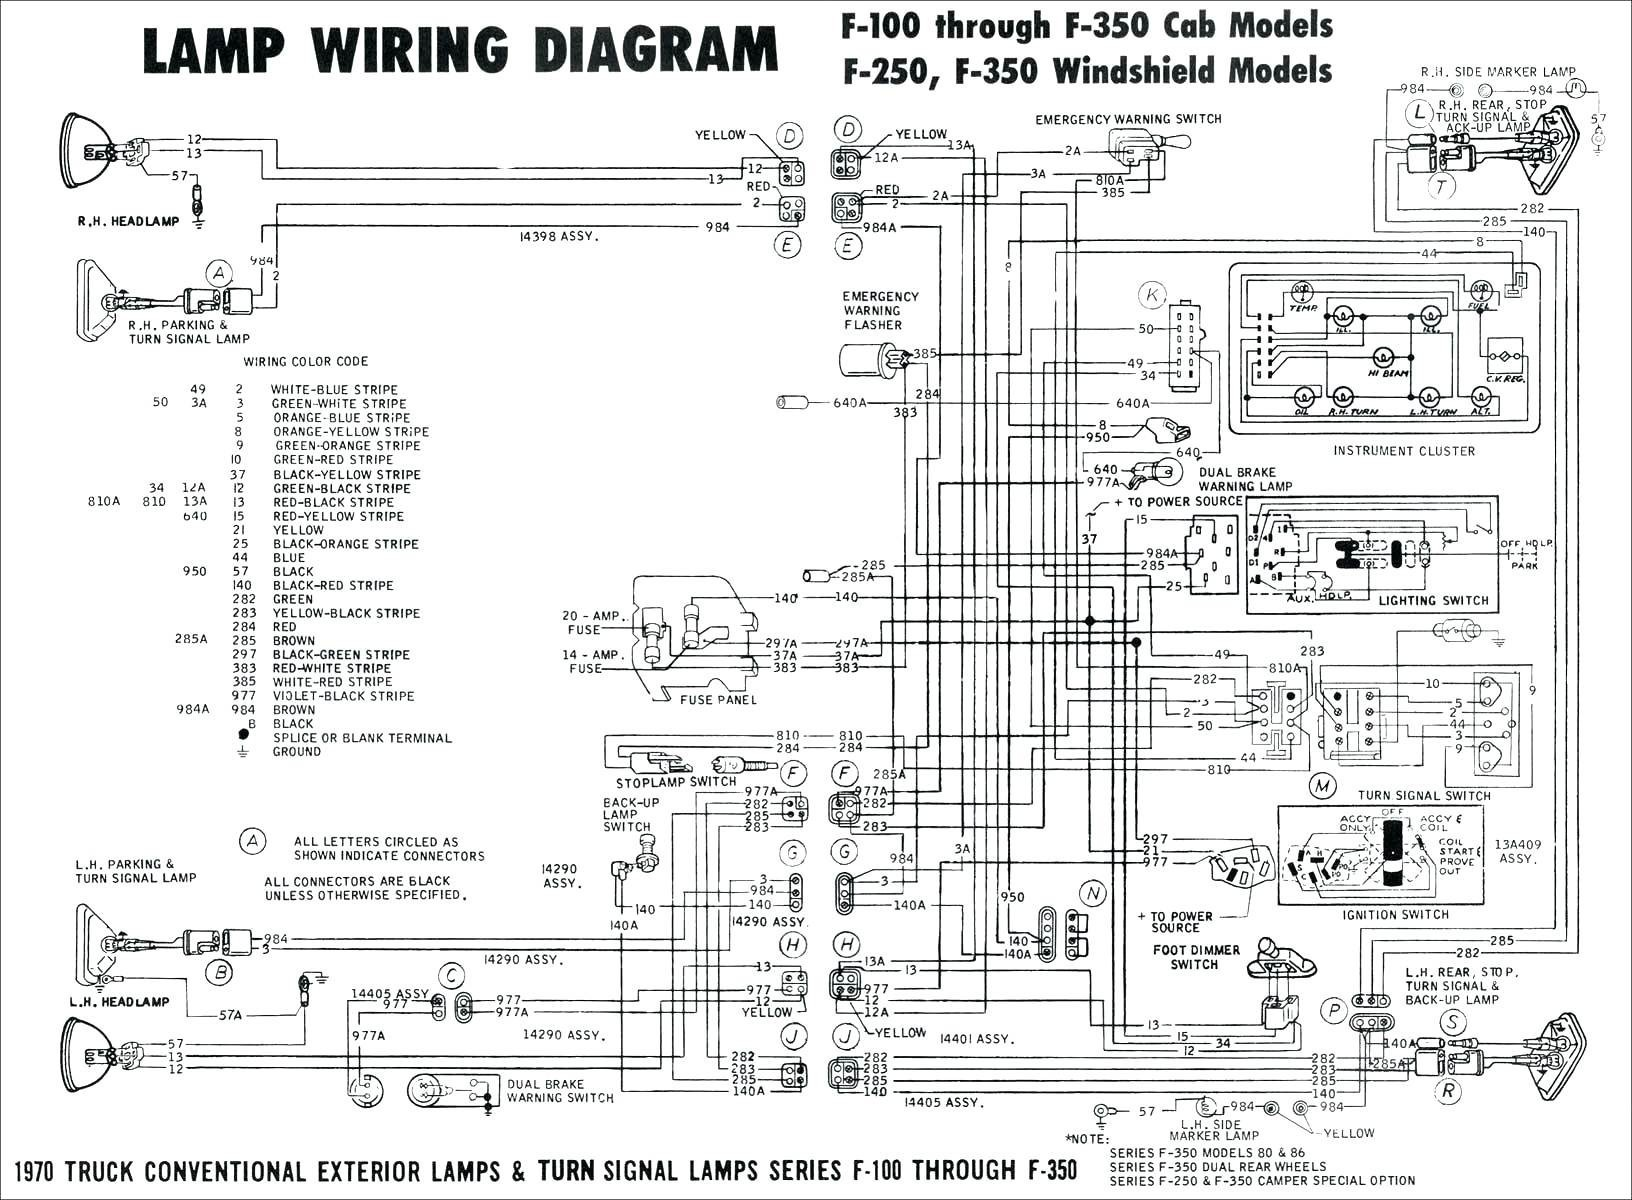 2001 Civic Ecu Wiring Diagram Library Of Wiring Diagrams \u2022 95 GSR ECU  Wire Diagram Honda Civic Ecu Diagram